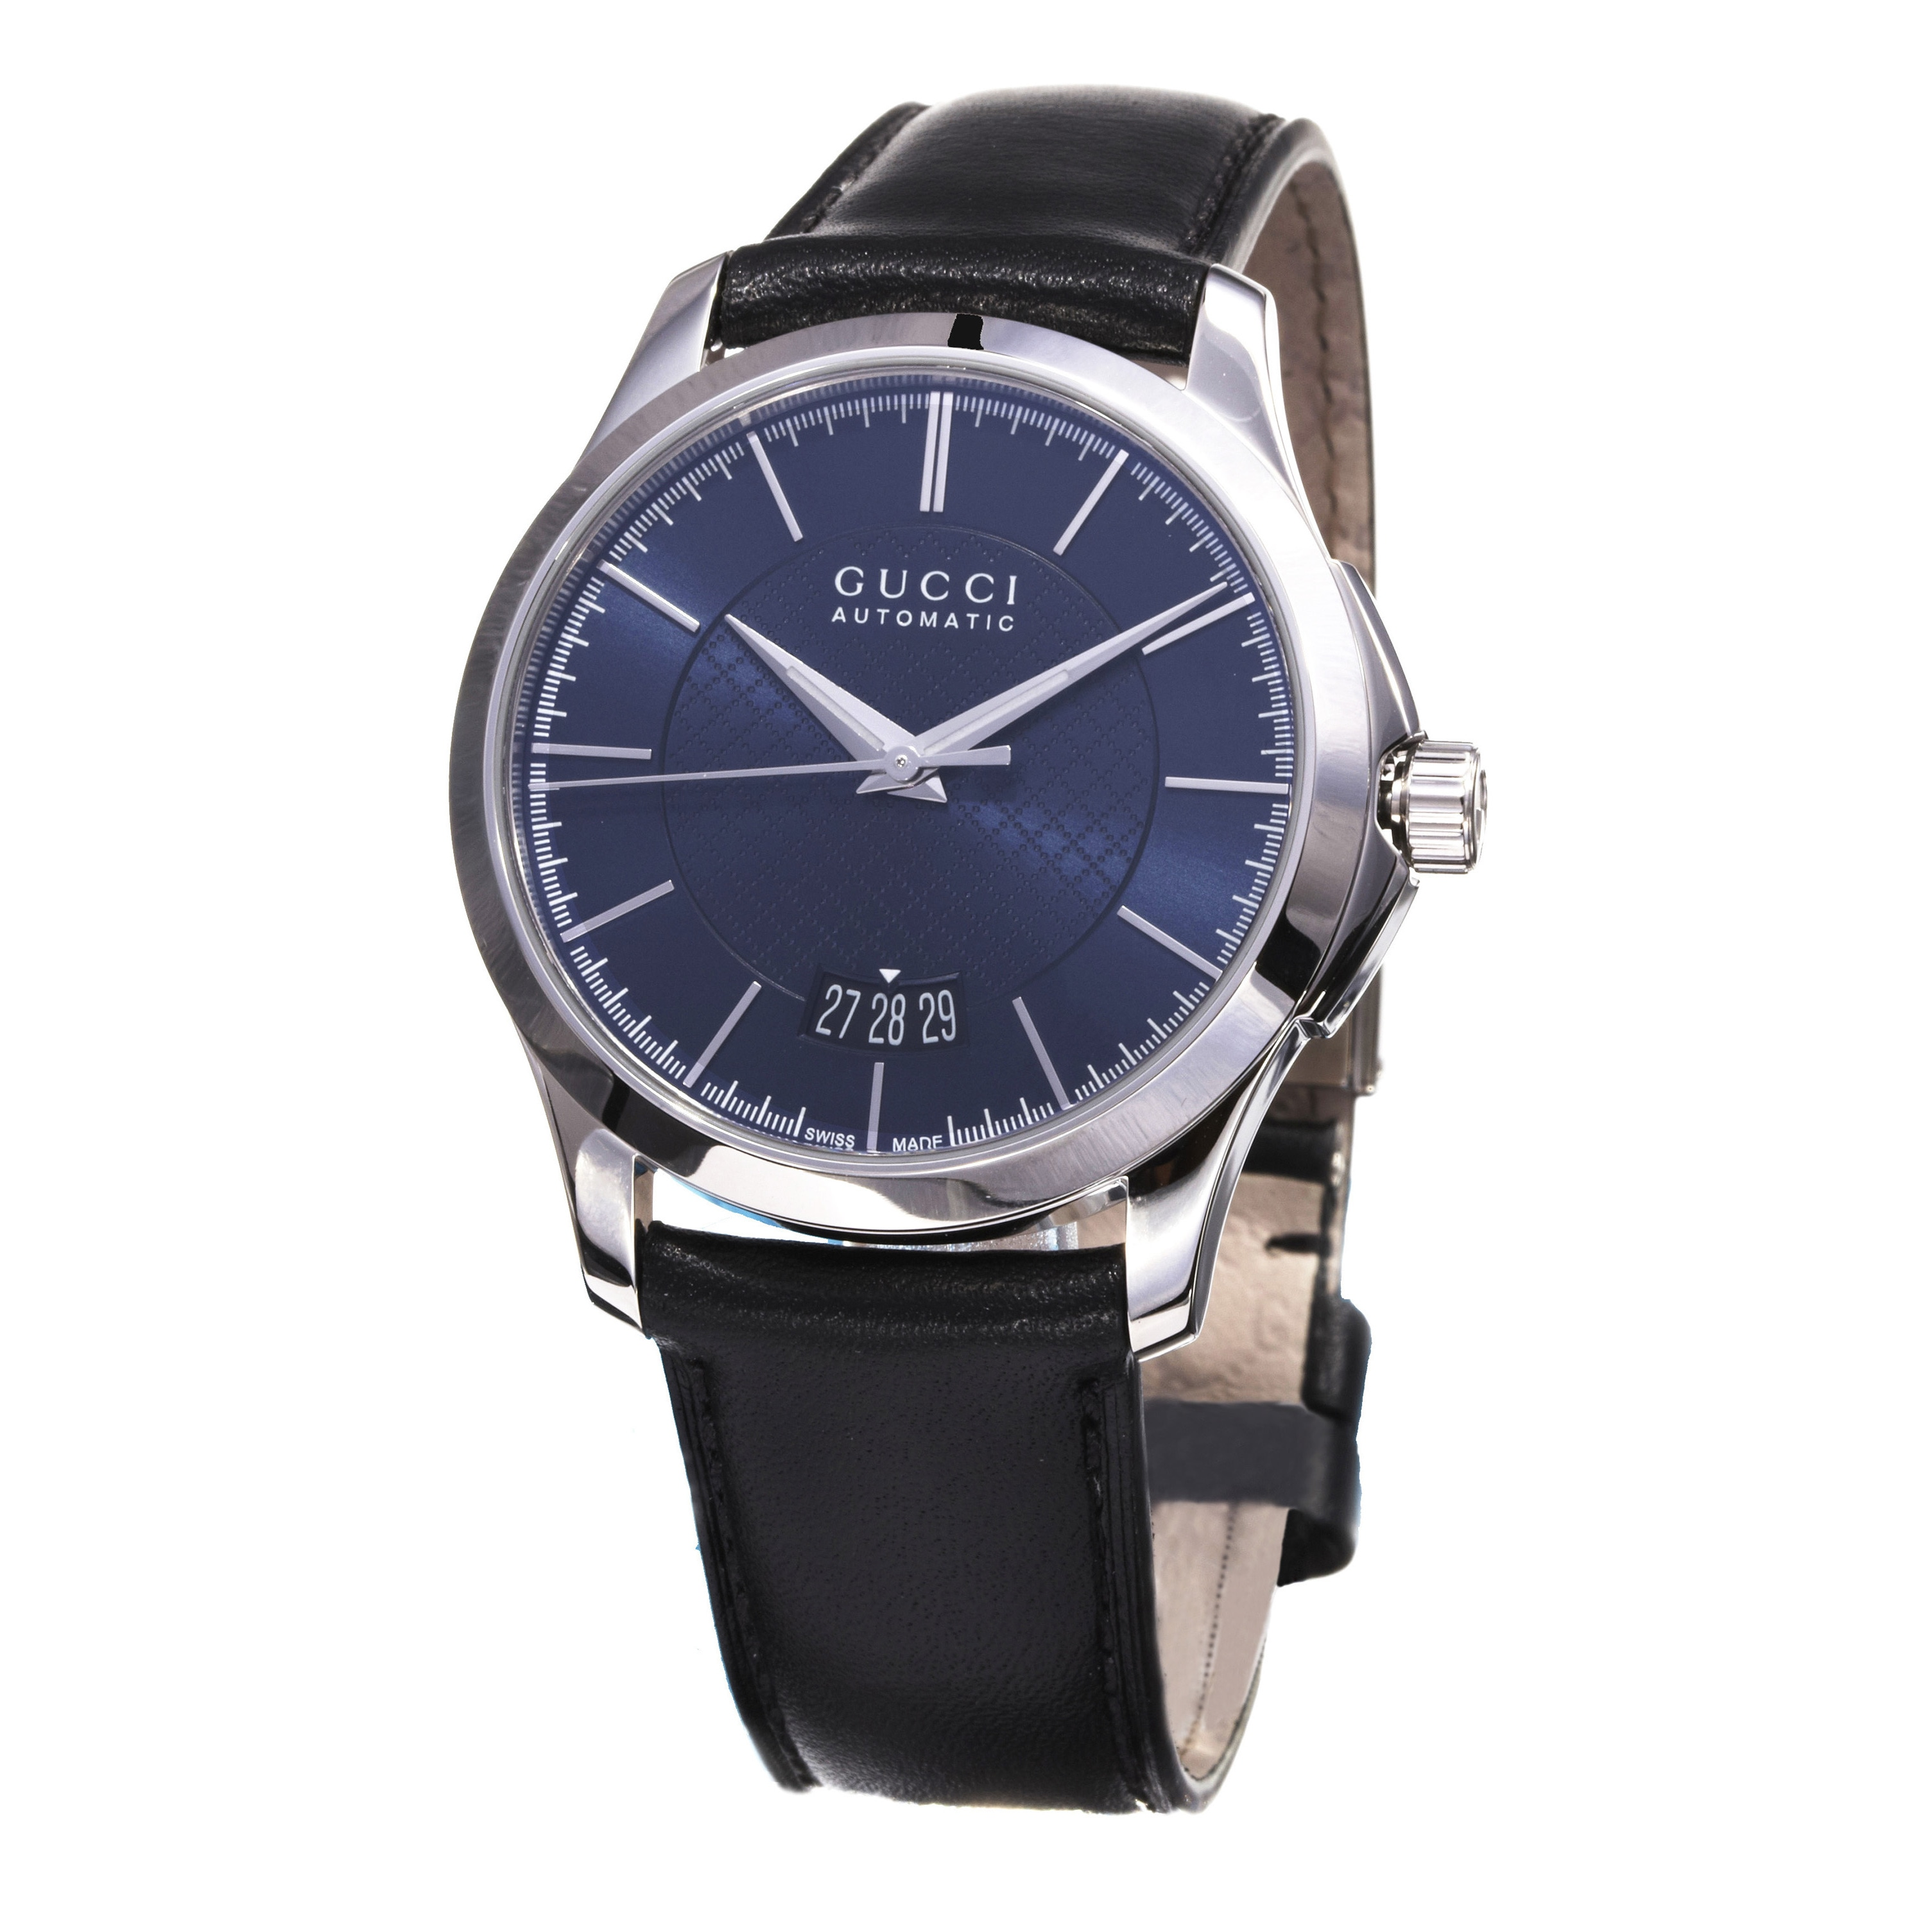 734fbcc1076 Shop Gucci Men s YA126443  Timeless  Blue Dial Black Leather Strap Swiss  Automatic Watch - Free Shipping Today - Overstock - 10290521